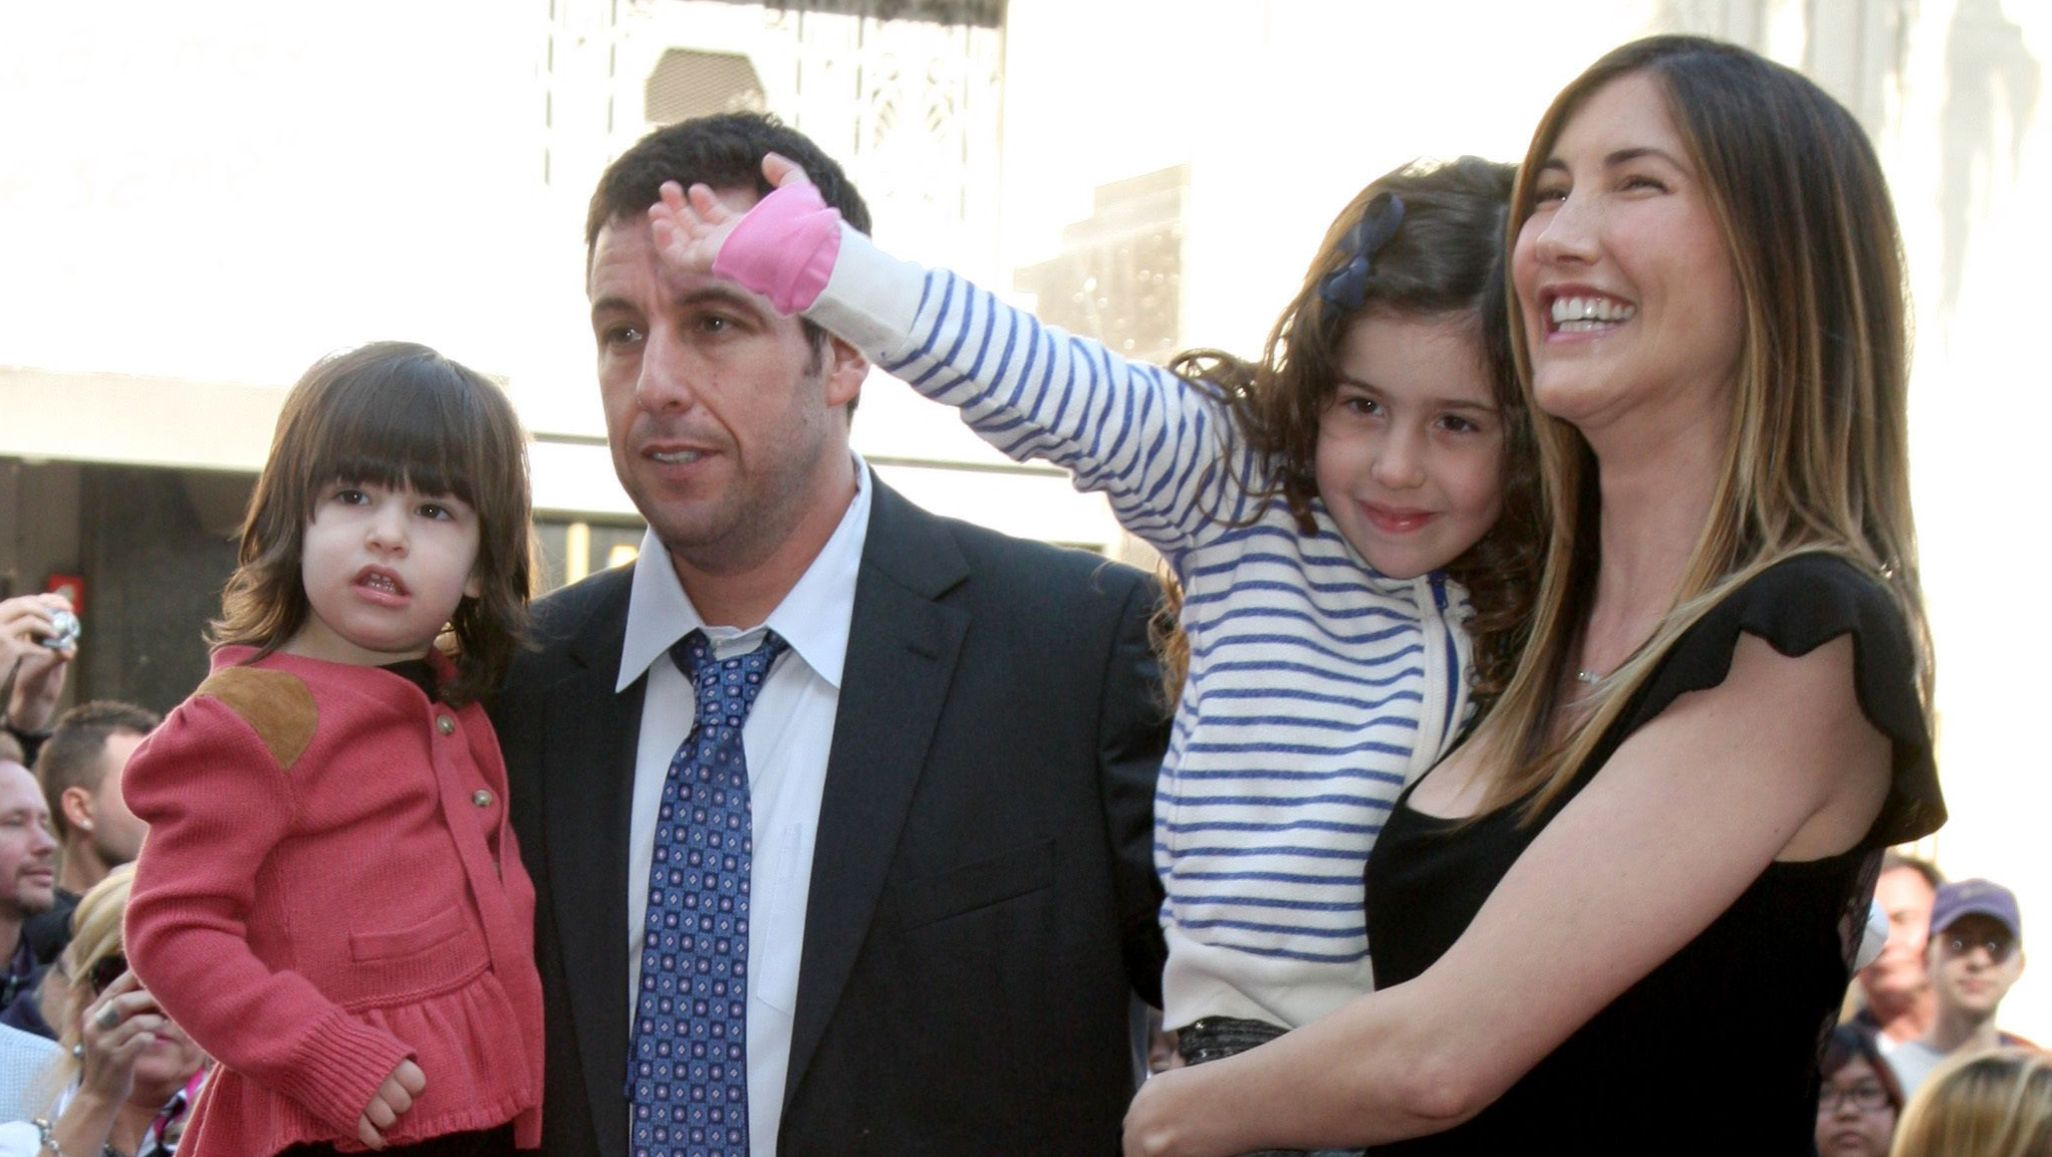 Adam and Jackie Sandler hold their two kids, Sunny and Sadie.